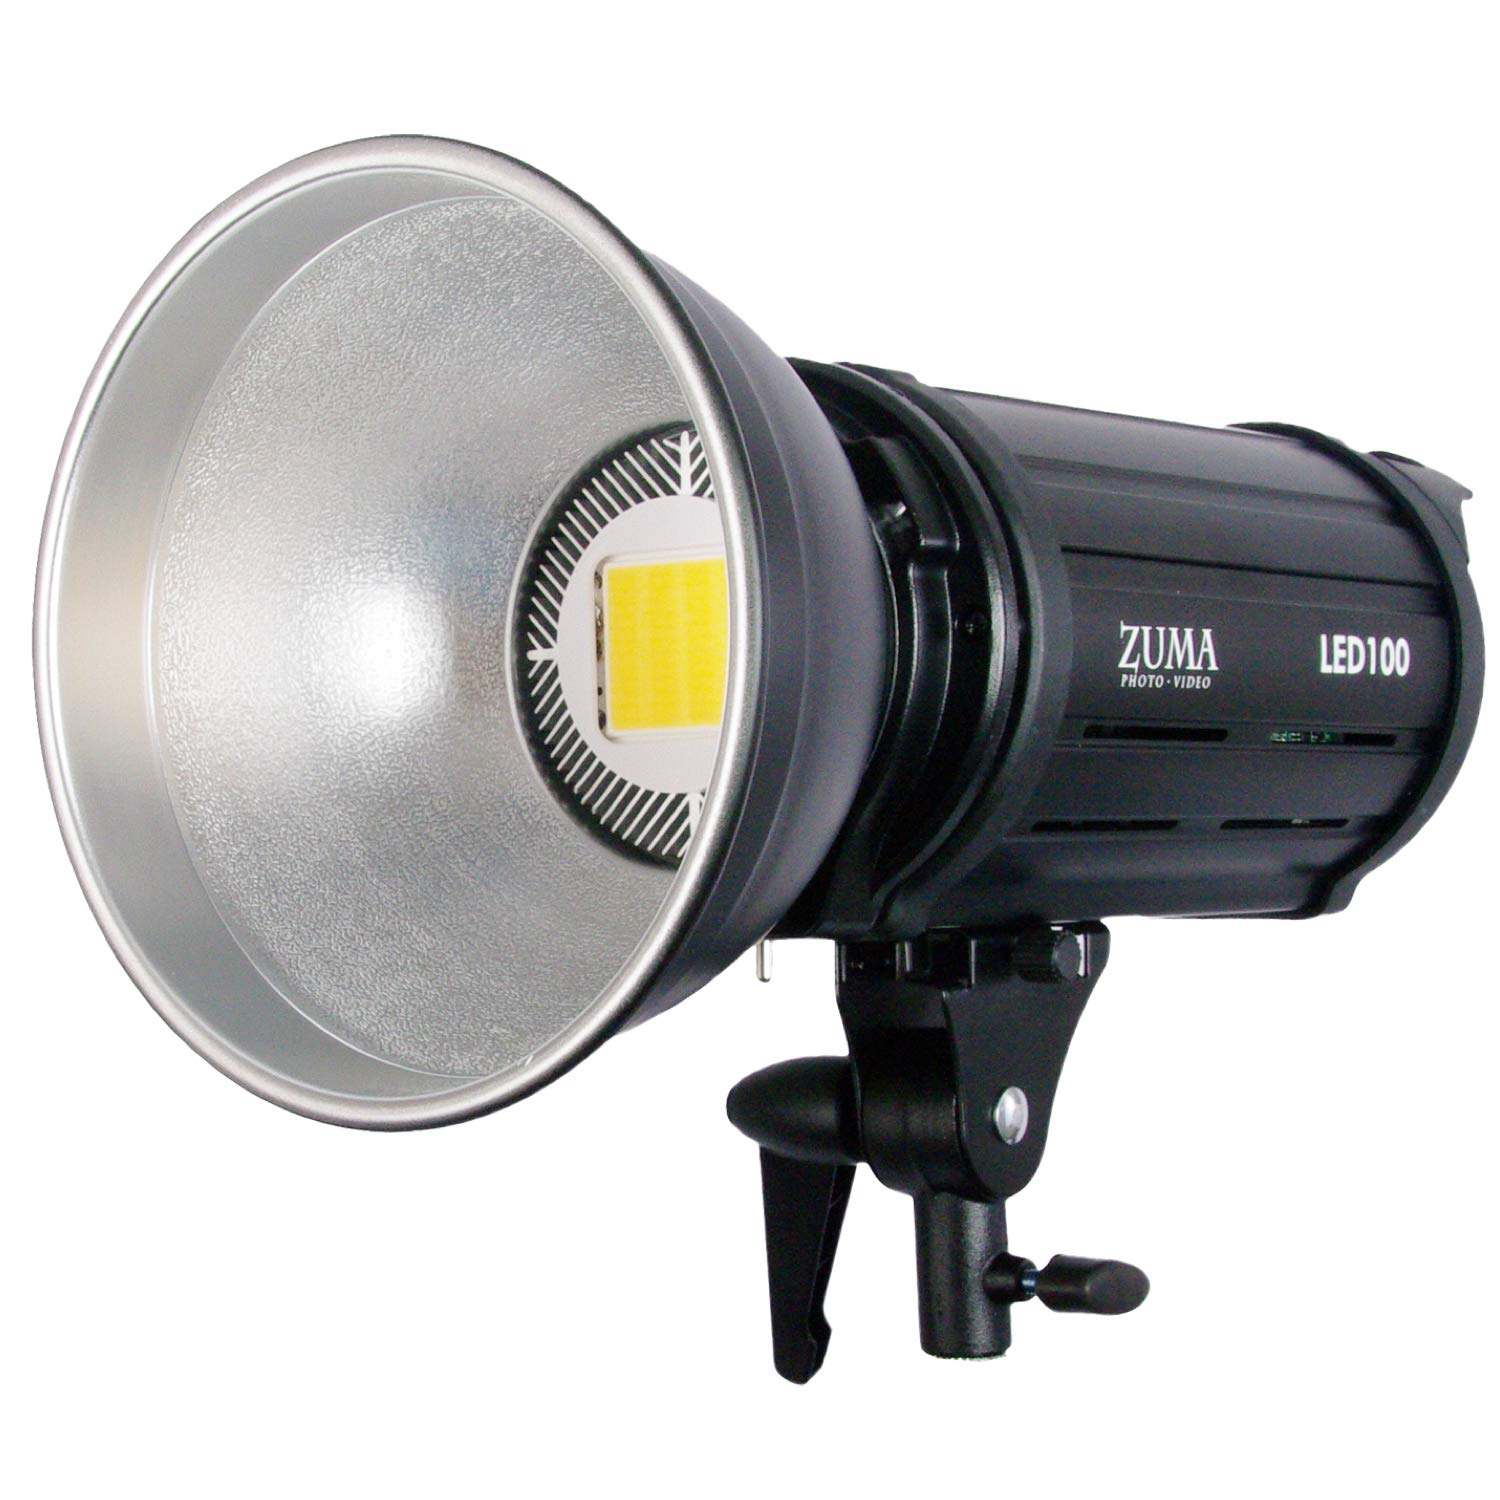 LED 100W Photo Studio Video Light CRI 95 10000 Lumens w/Dimmer, Umbrella Holder